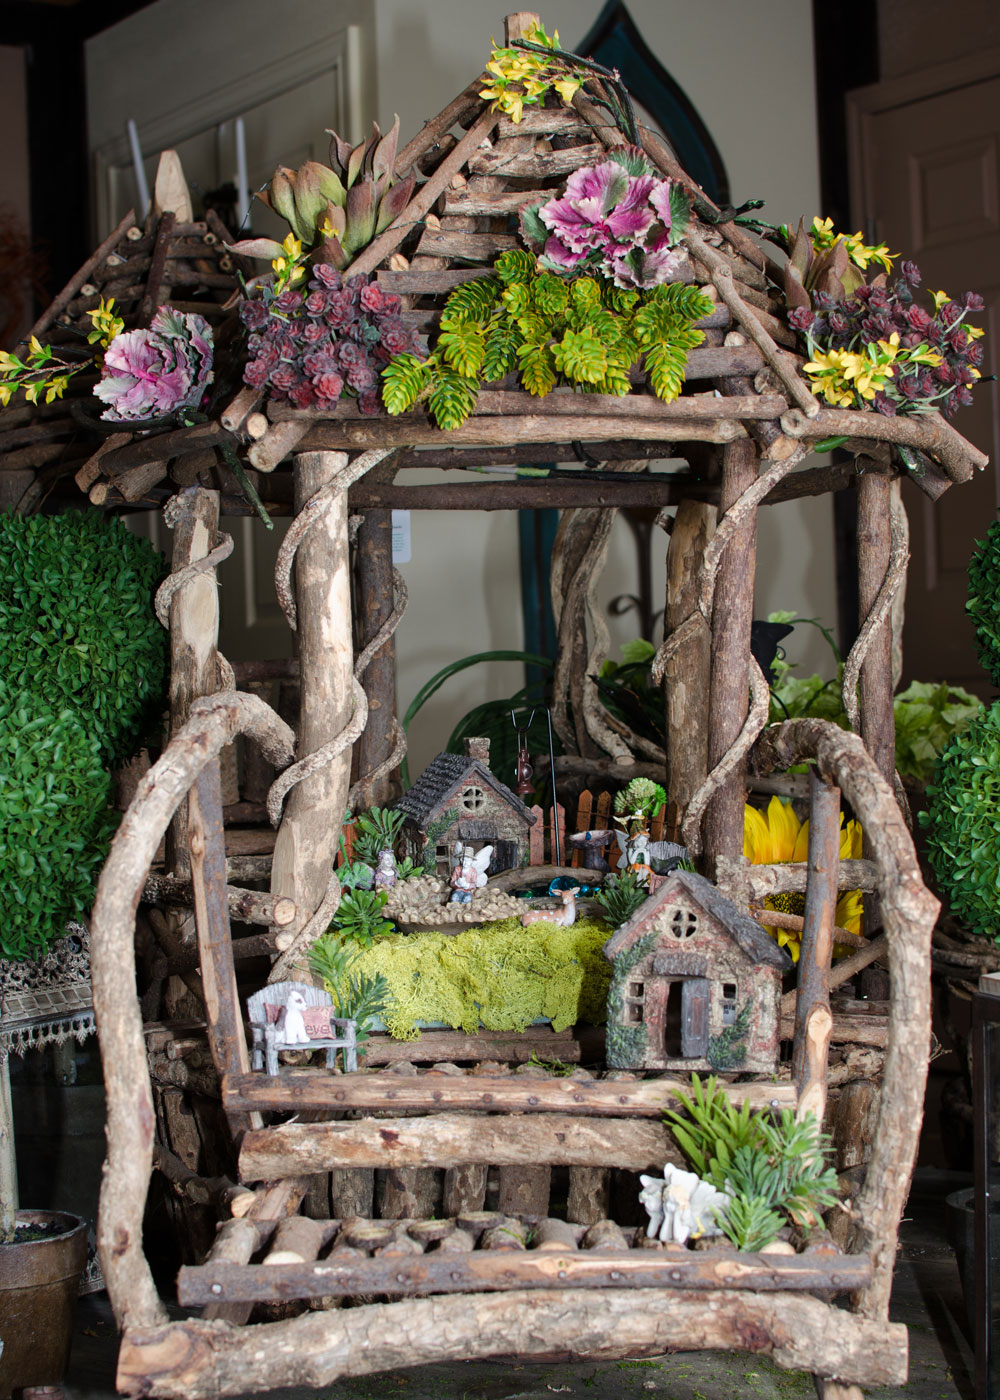 Gift shop home decor schmitz garden center - Garden decor stores ...